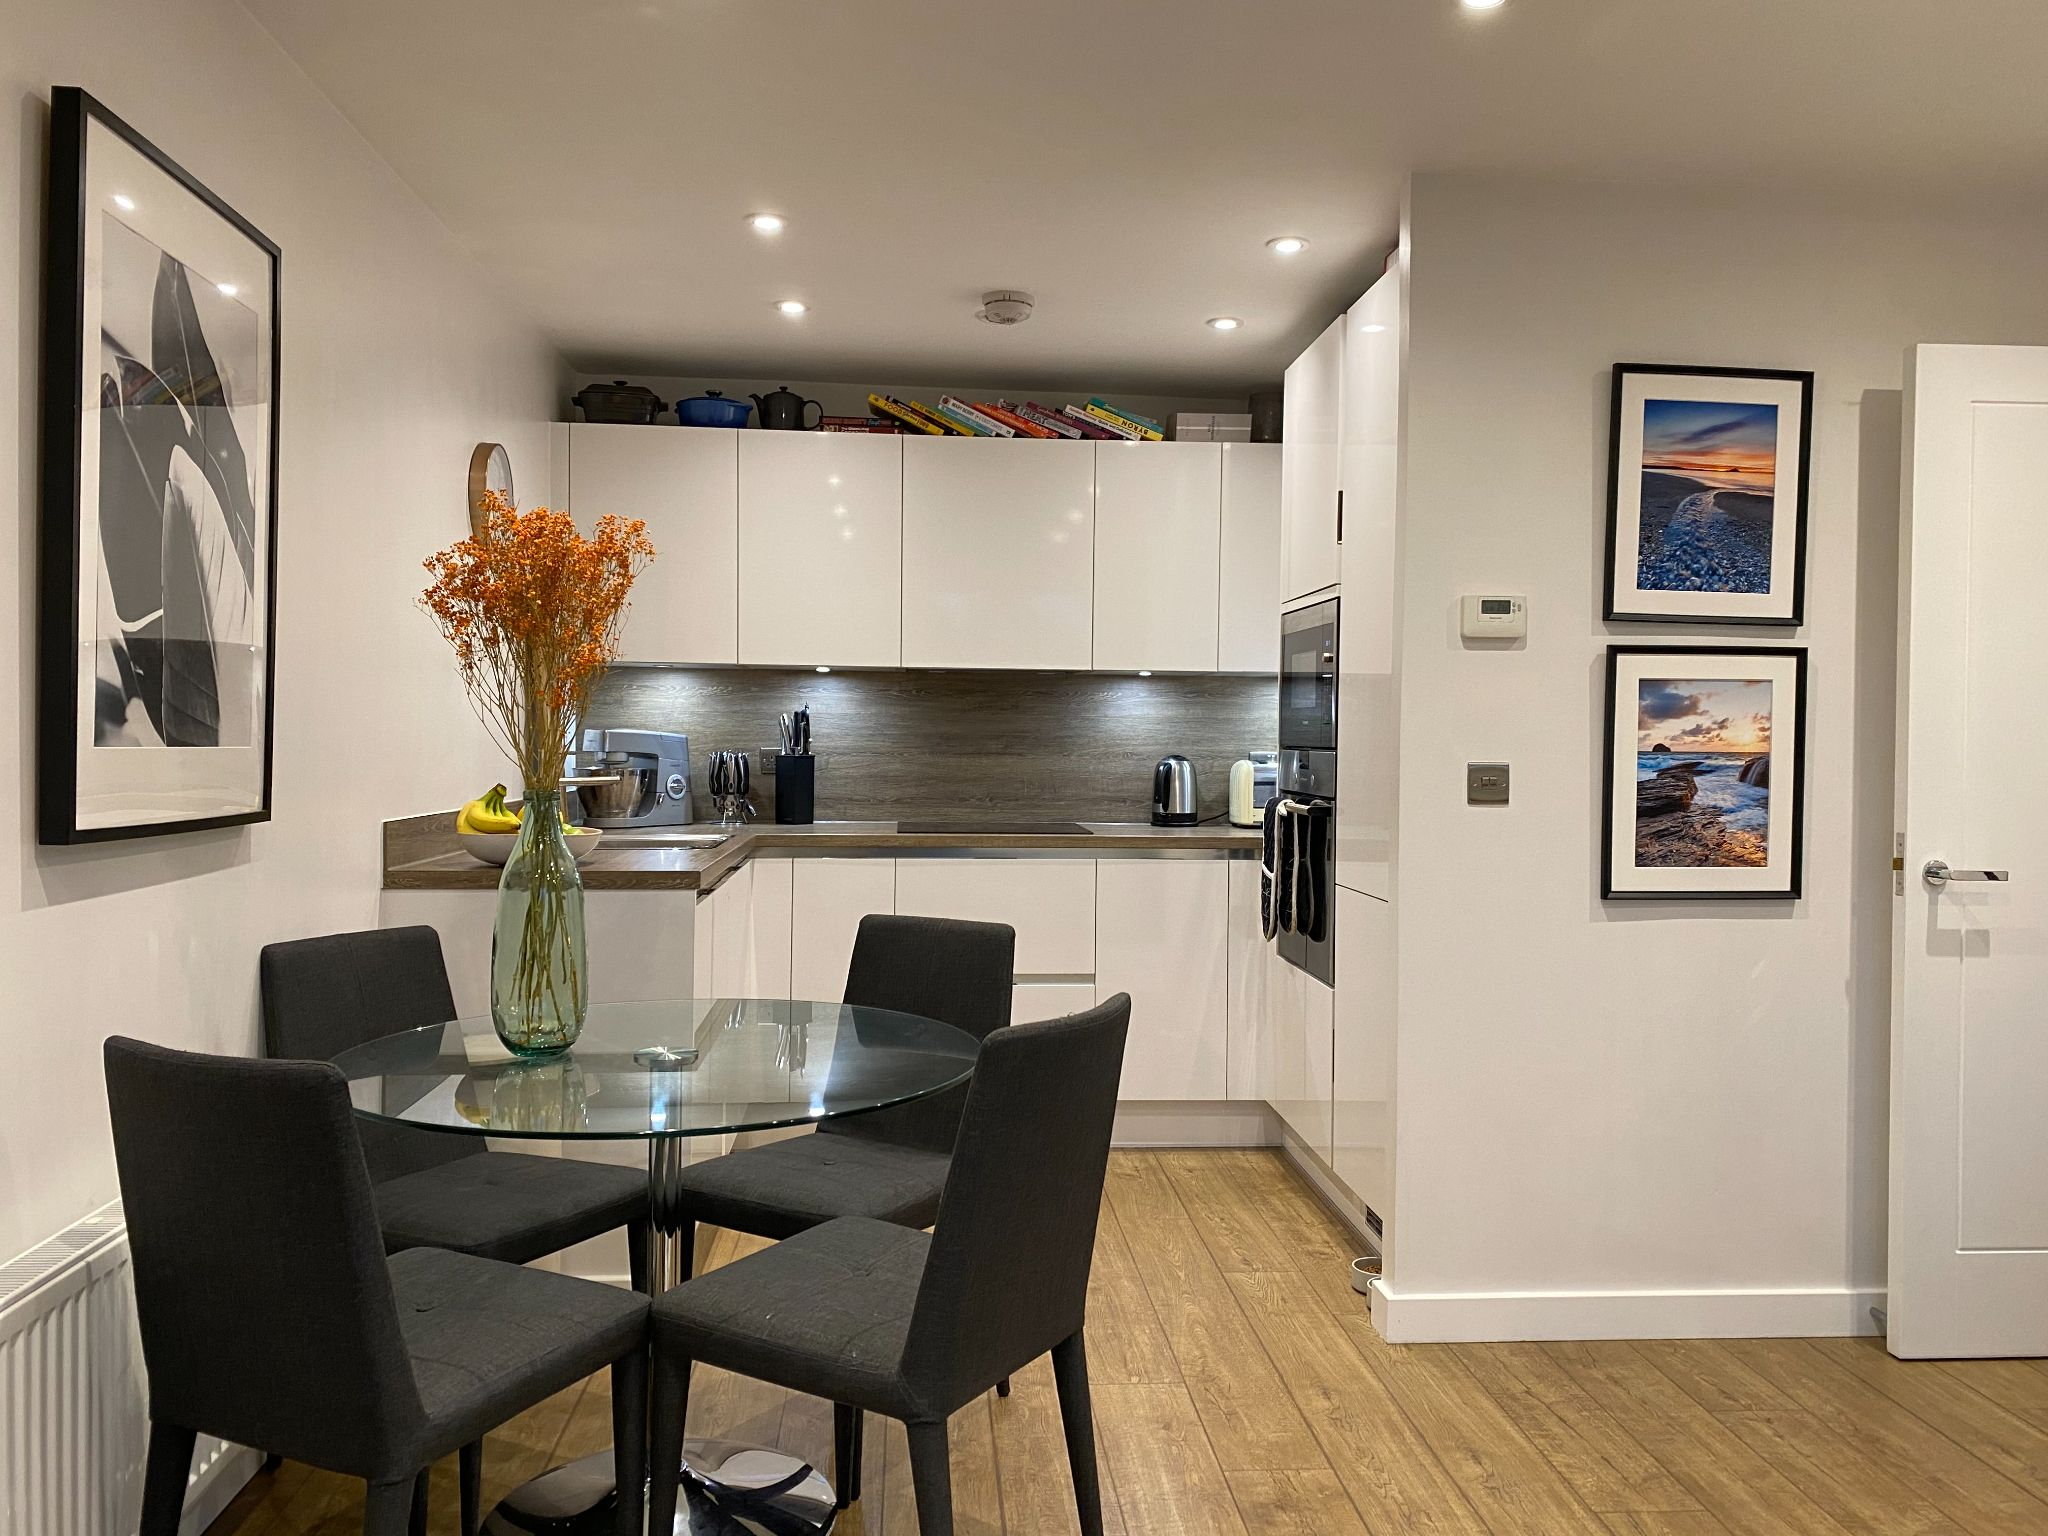 2 bedroom apartment For Sale in Dunton Green - Photograph 3